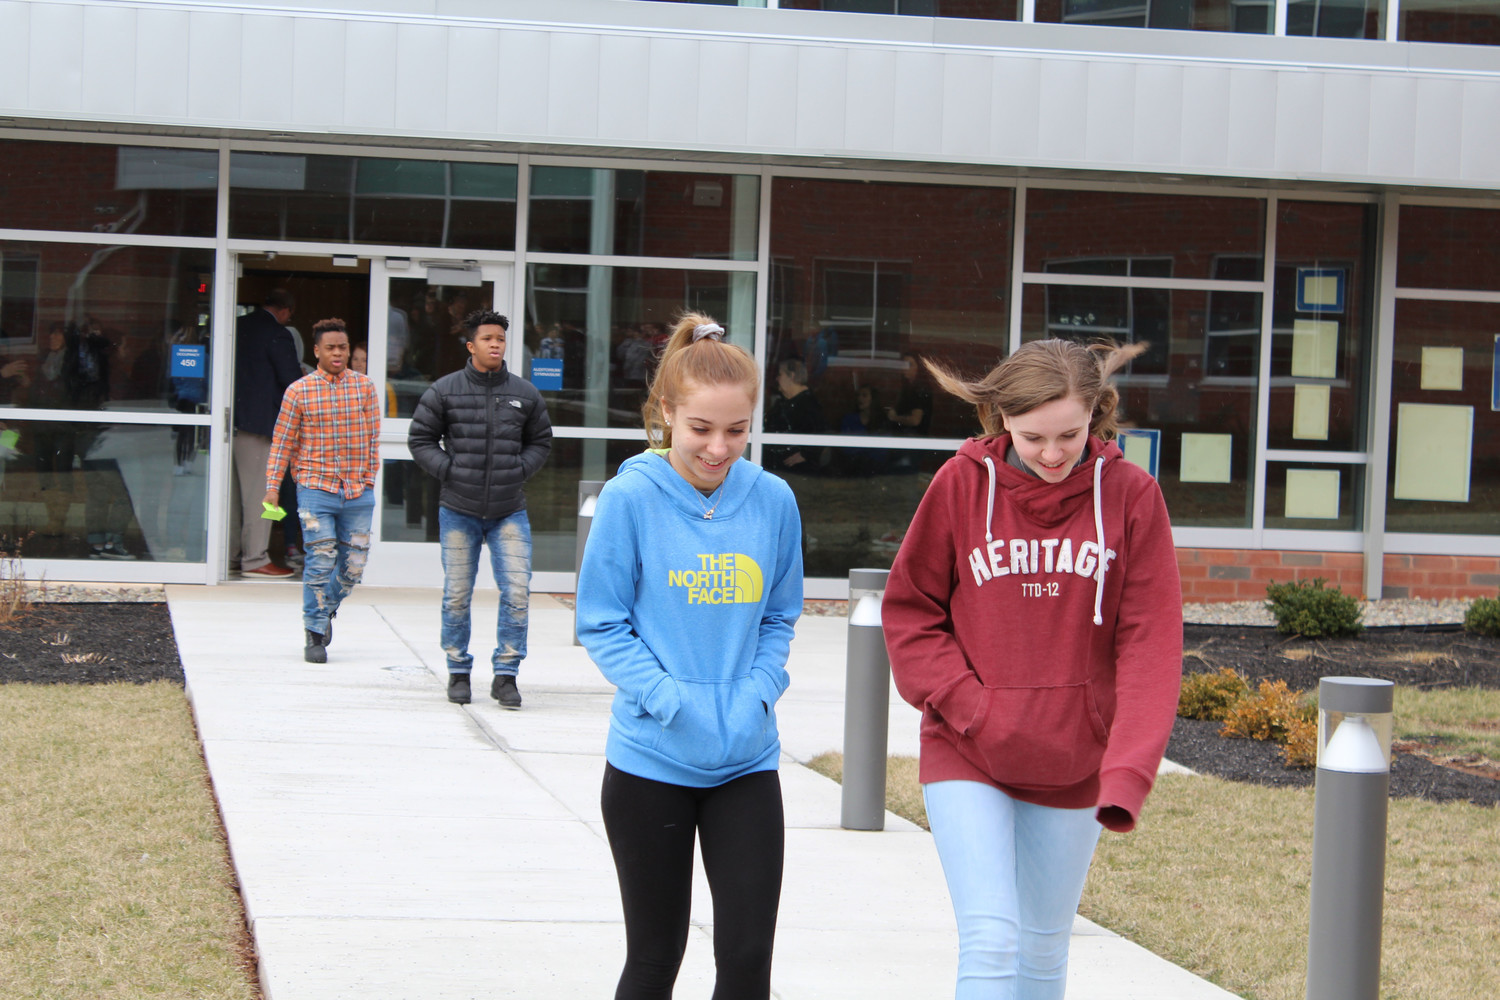 Juniors Abrielle Spagnolo and Alexis Harmon walk into the courtyard to participate in the walkout.